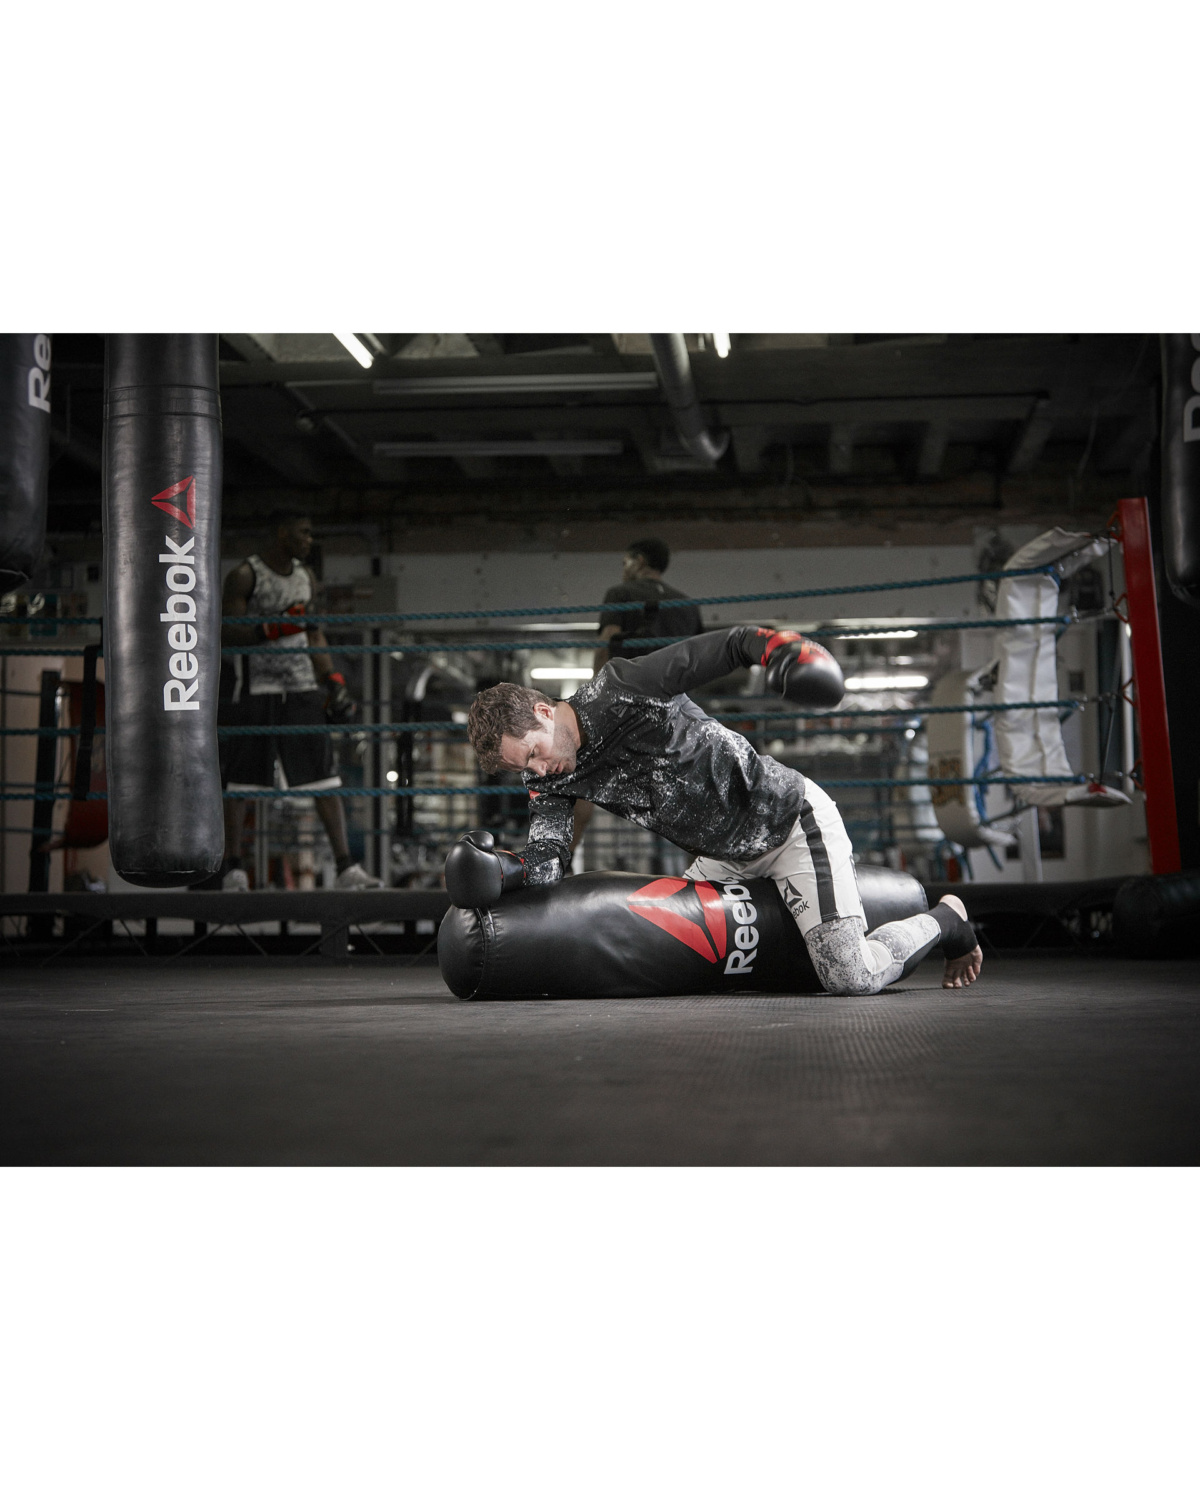 reebok_combat_grapping_bag_lifestyle_22